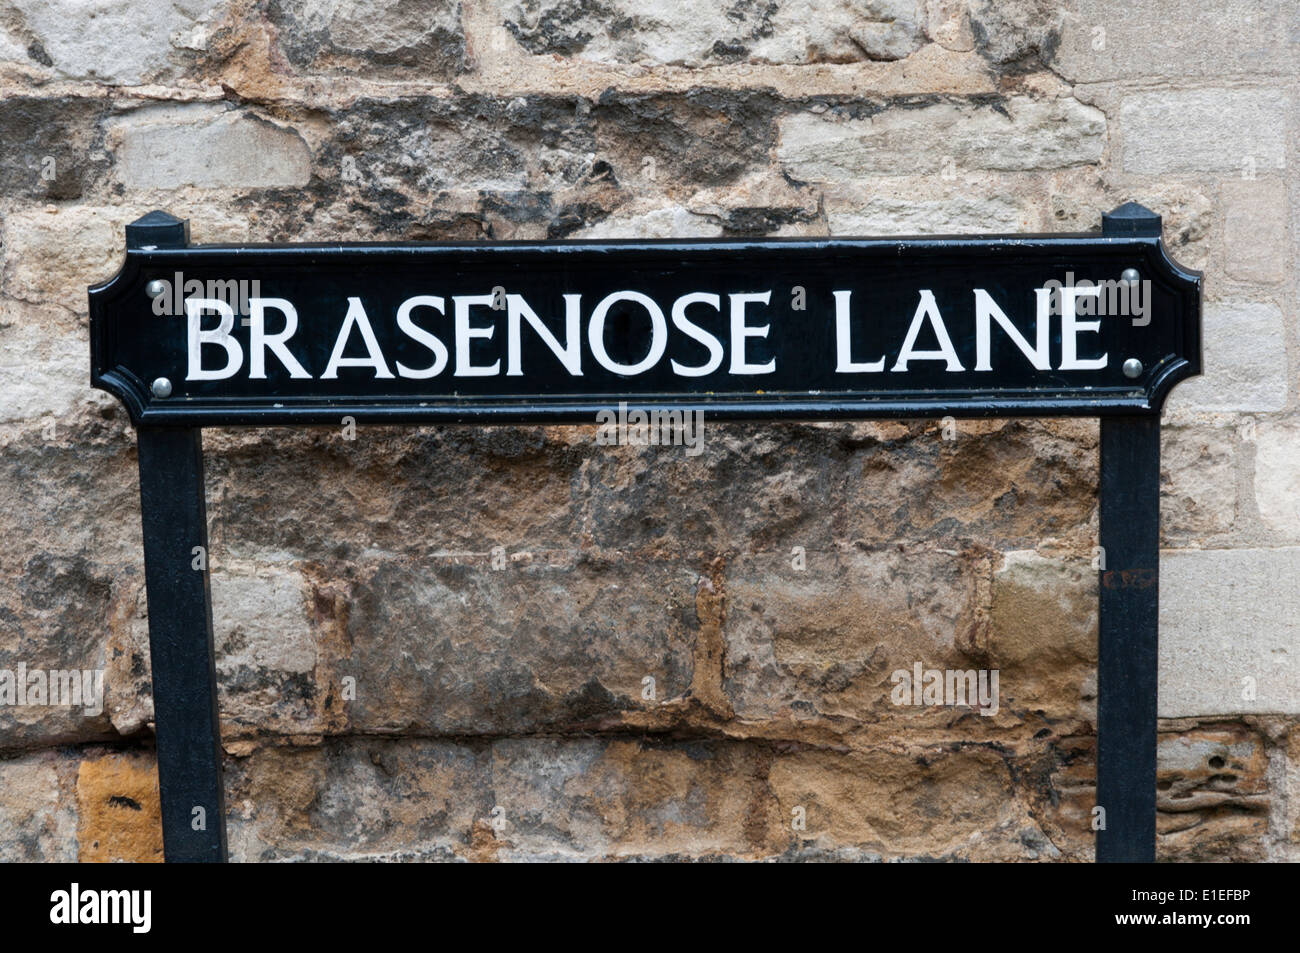 Brasenose Lane street name sign in Oxford, England - Stock Image